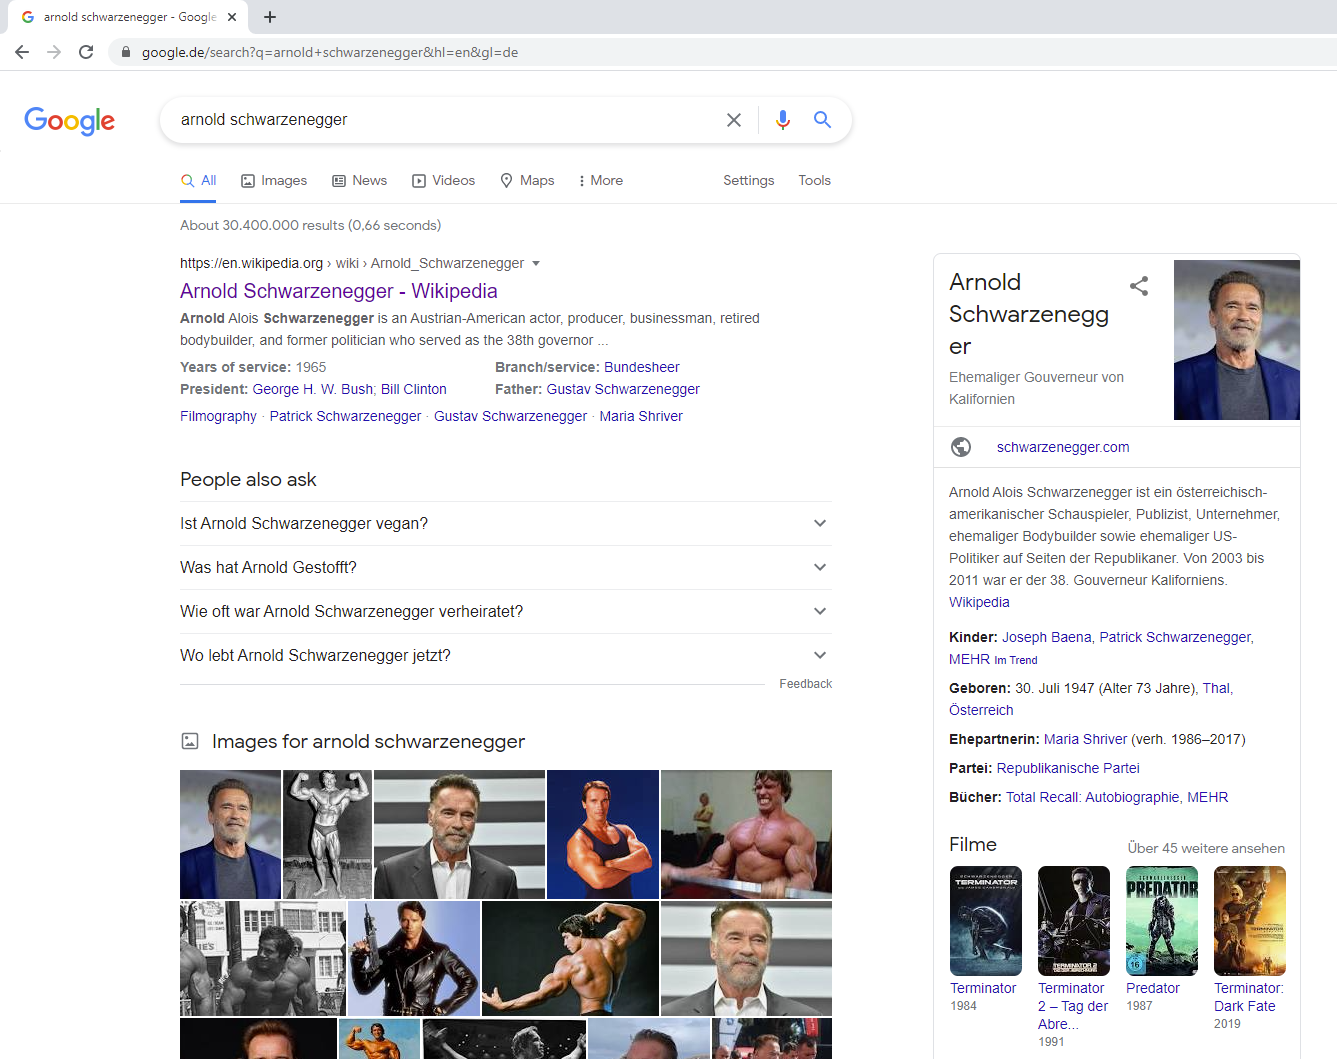 Figure-6-Search-Results-and-Knowledge-Panel-of-Arnold-Schwarzenegger